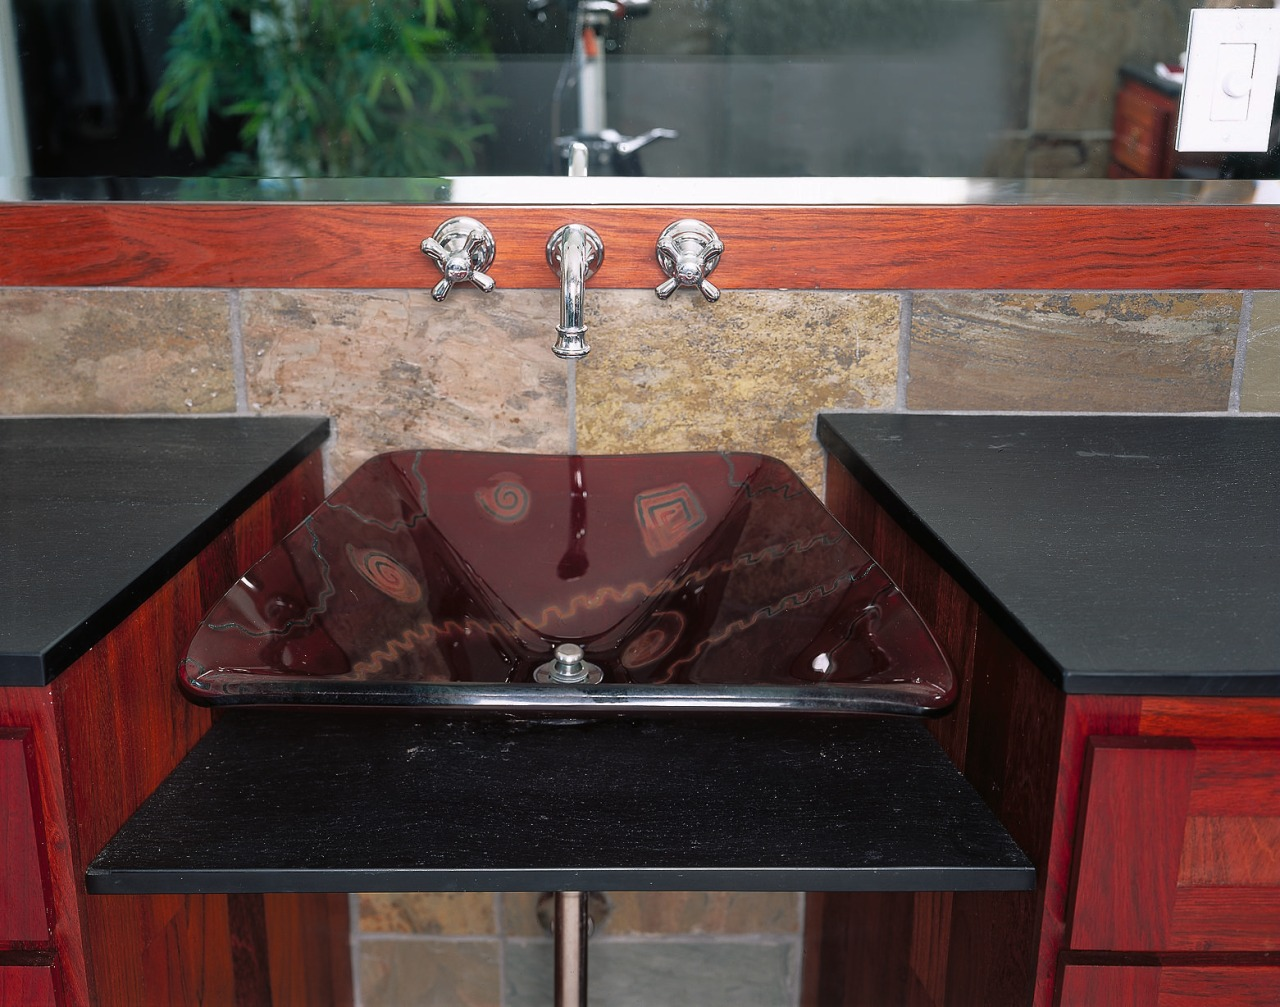 View of the hand basin countertop, floor, granite, hardware, material, sink, wood stain, red, black